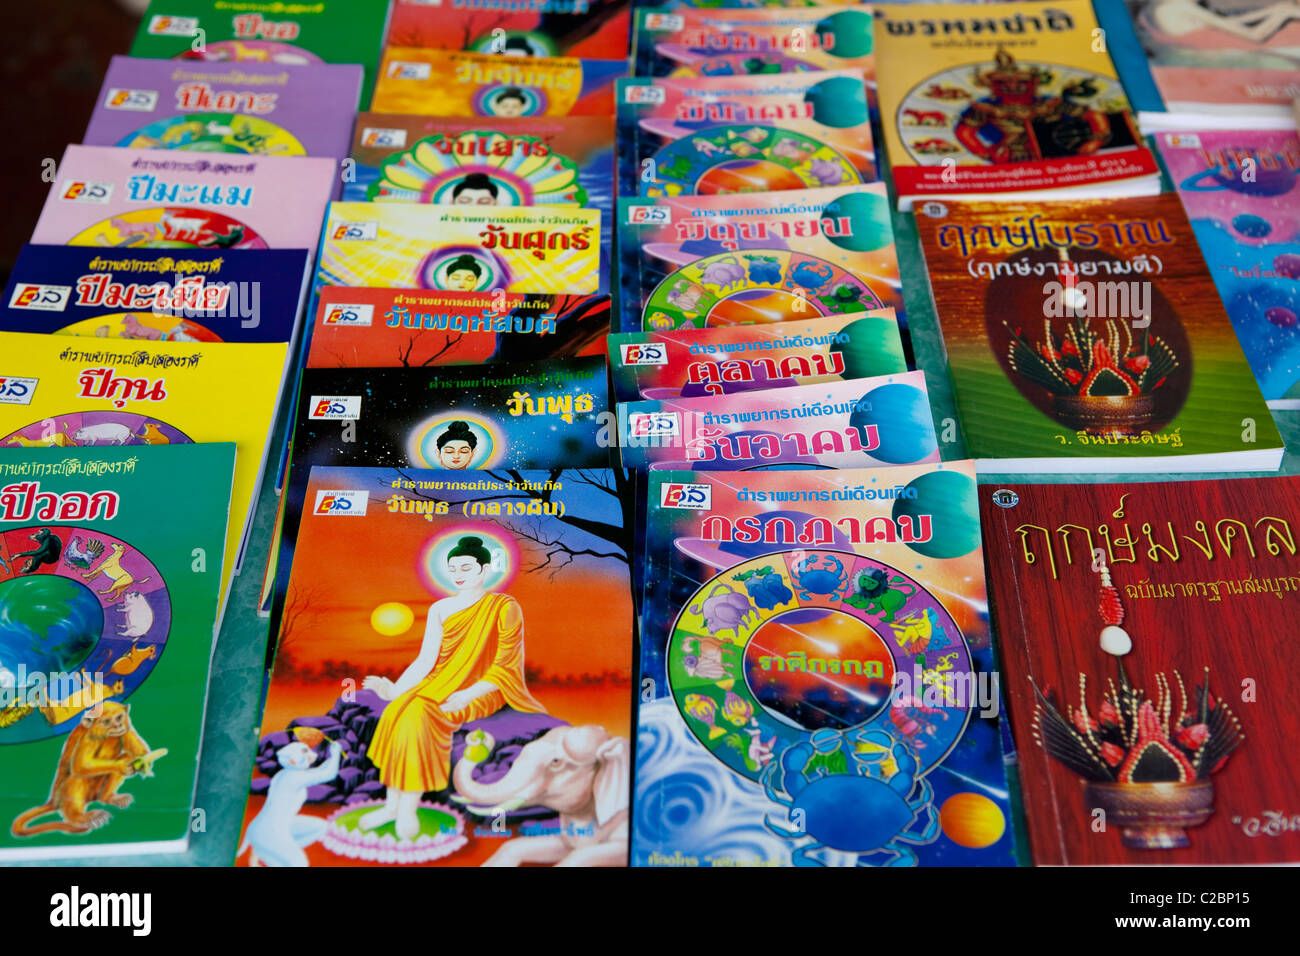 Buddhism fable books in bookstore, Lampang Thailand - Stock Image